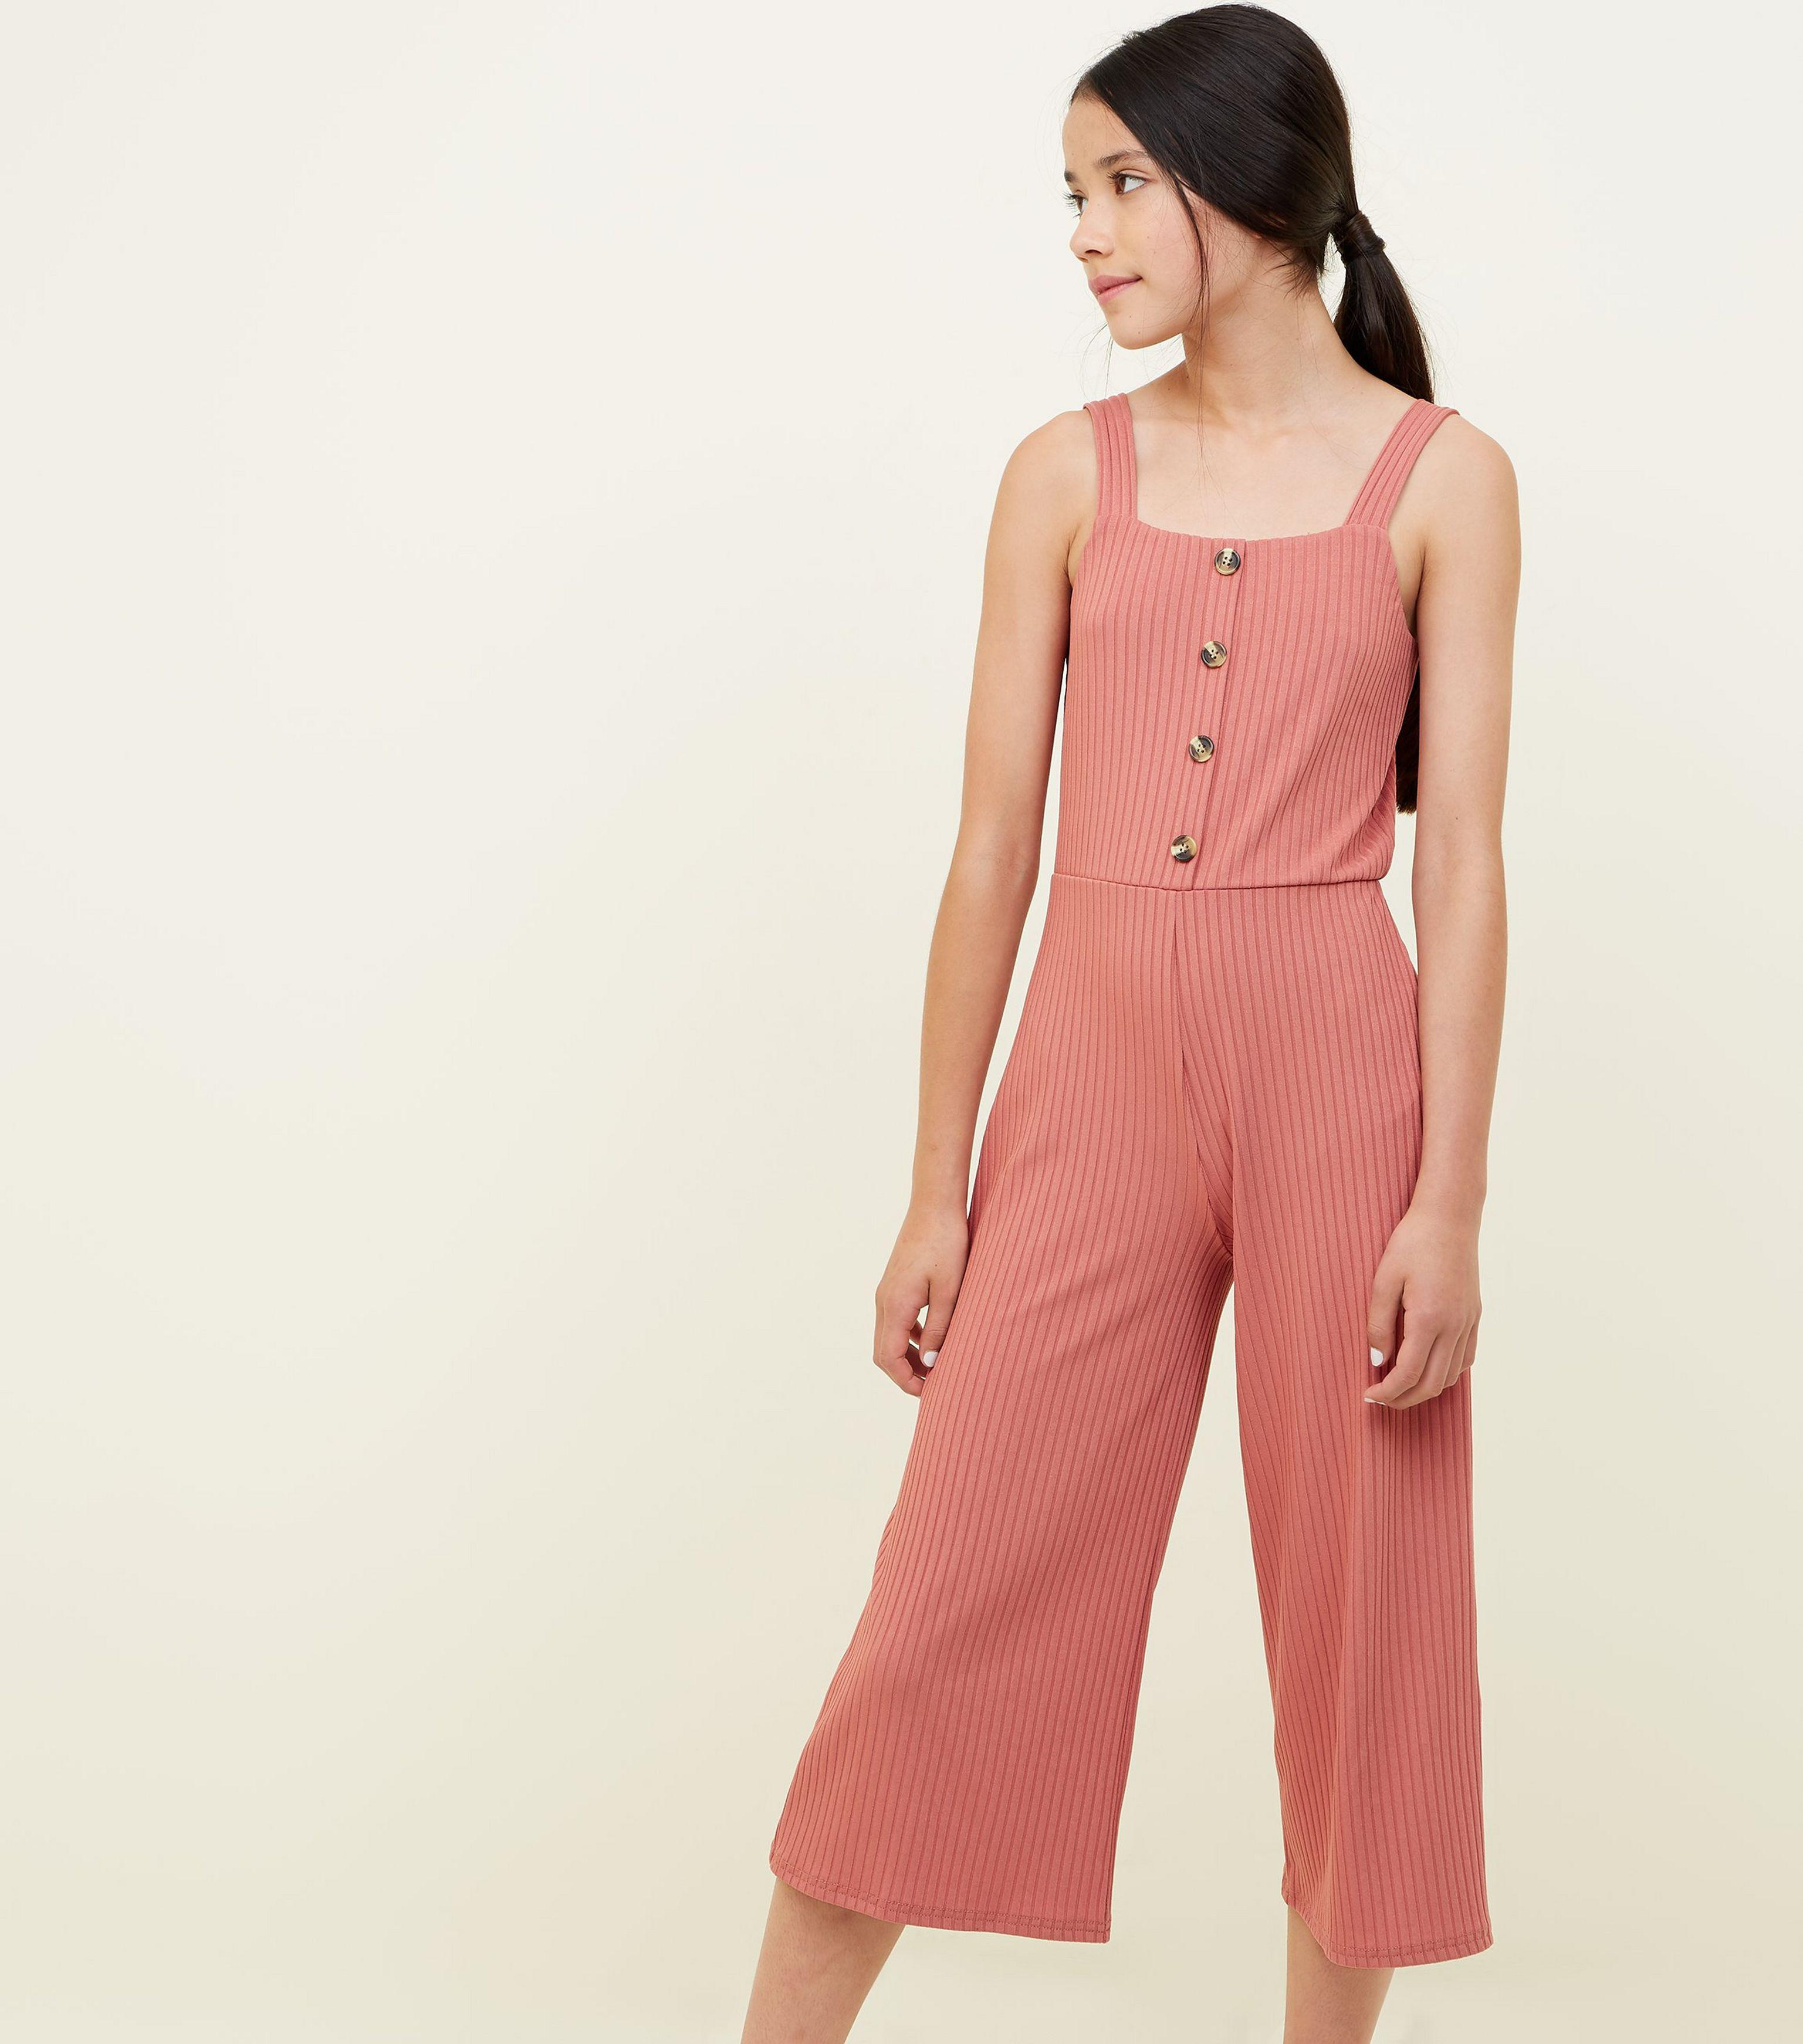 8c351bbb0c New Look Girls Coral Ribbed Button Front Jumpsuit in Pink - Lyst